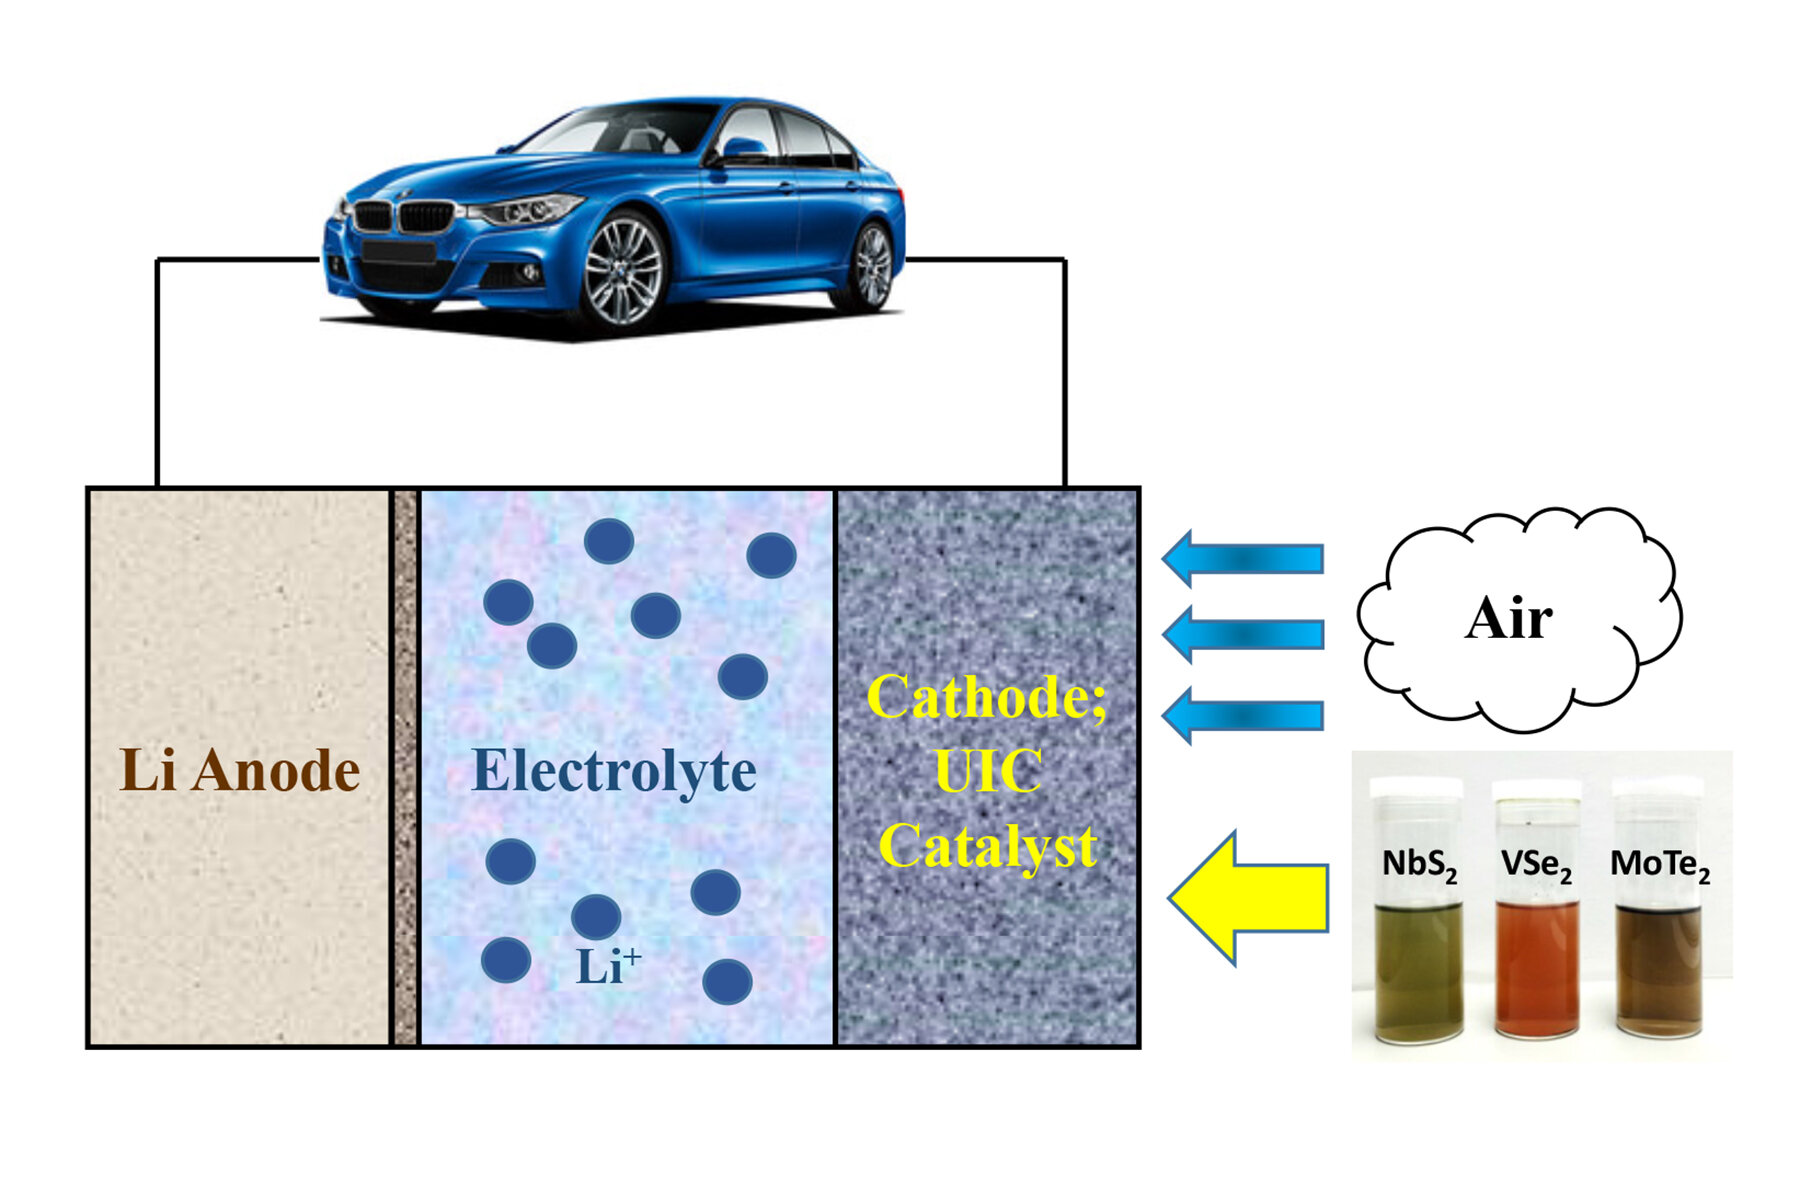 2 D Materials May Enable Electric Vehicles To Get 500 Miles On A